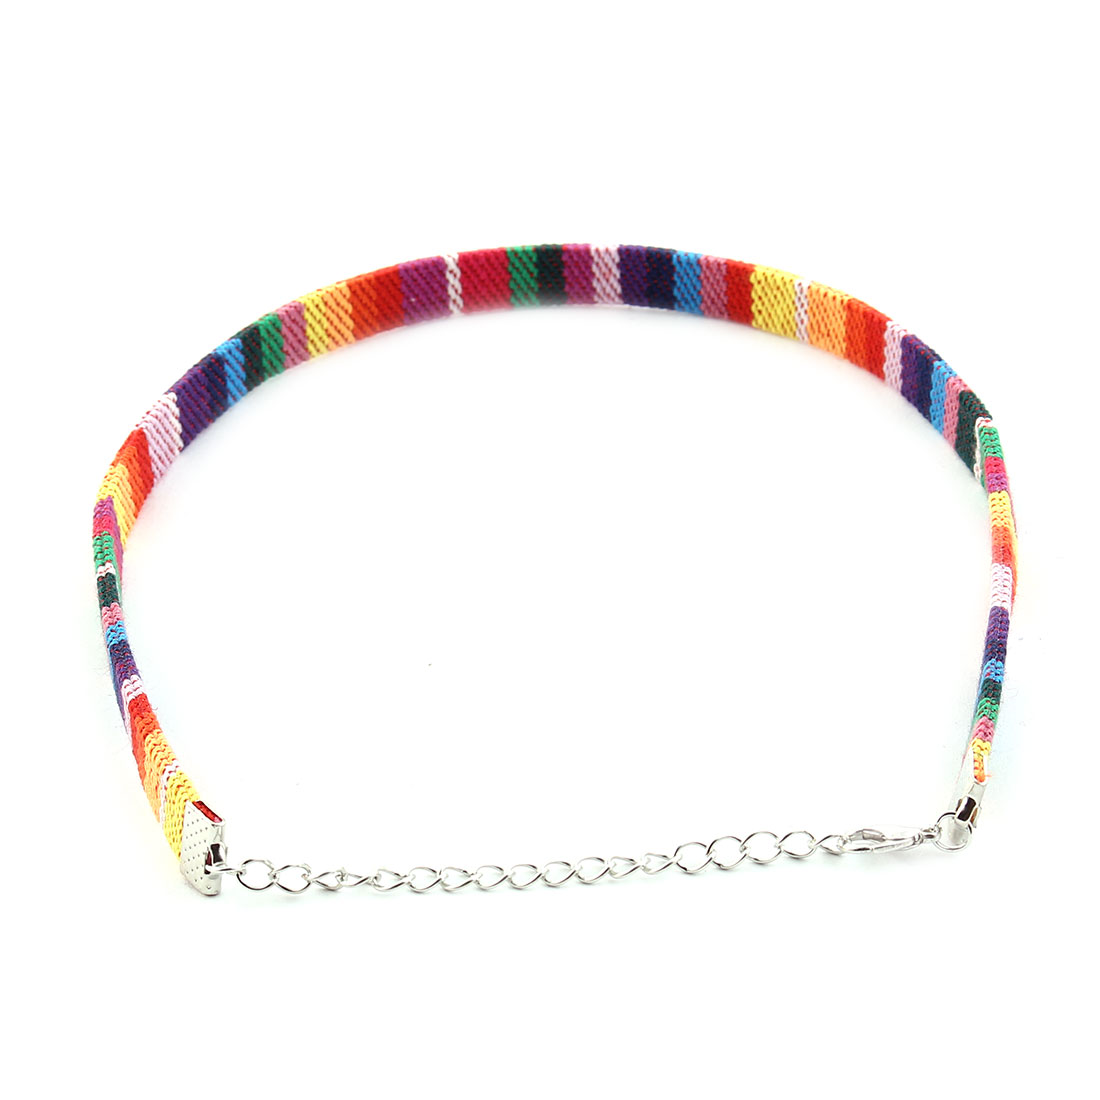 Ethnic Style Adjustable Fabric Embrodered Clavicle Necklace Collar Choker # 4 - image 3 of 4